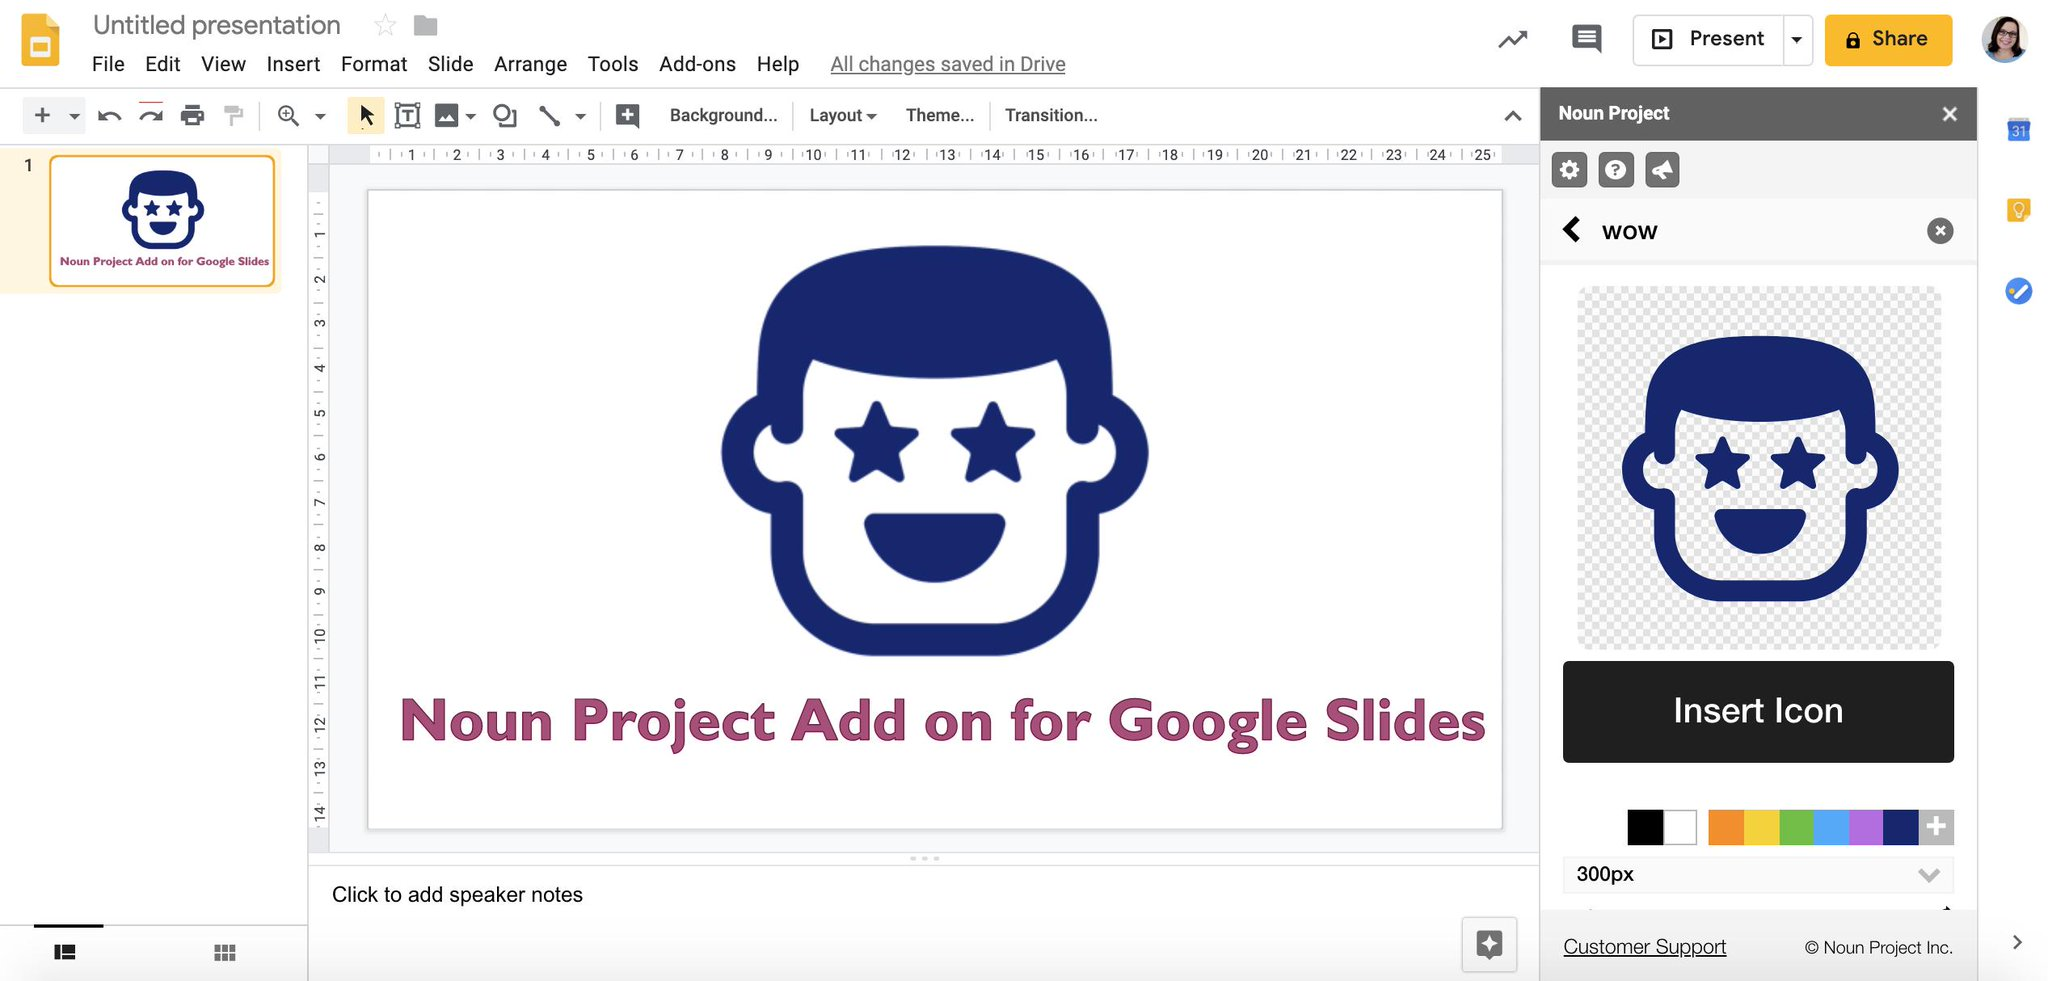 Just discovered the noun project add on for Google Slides! Love this! A time saver! @tonyvincent @nounproject https://t.co/0OzxmKF02g